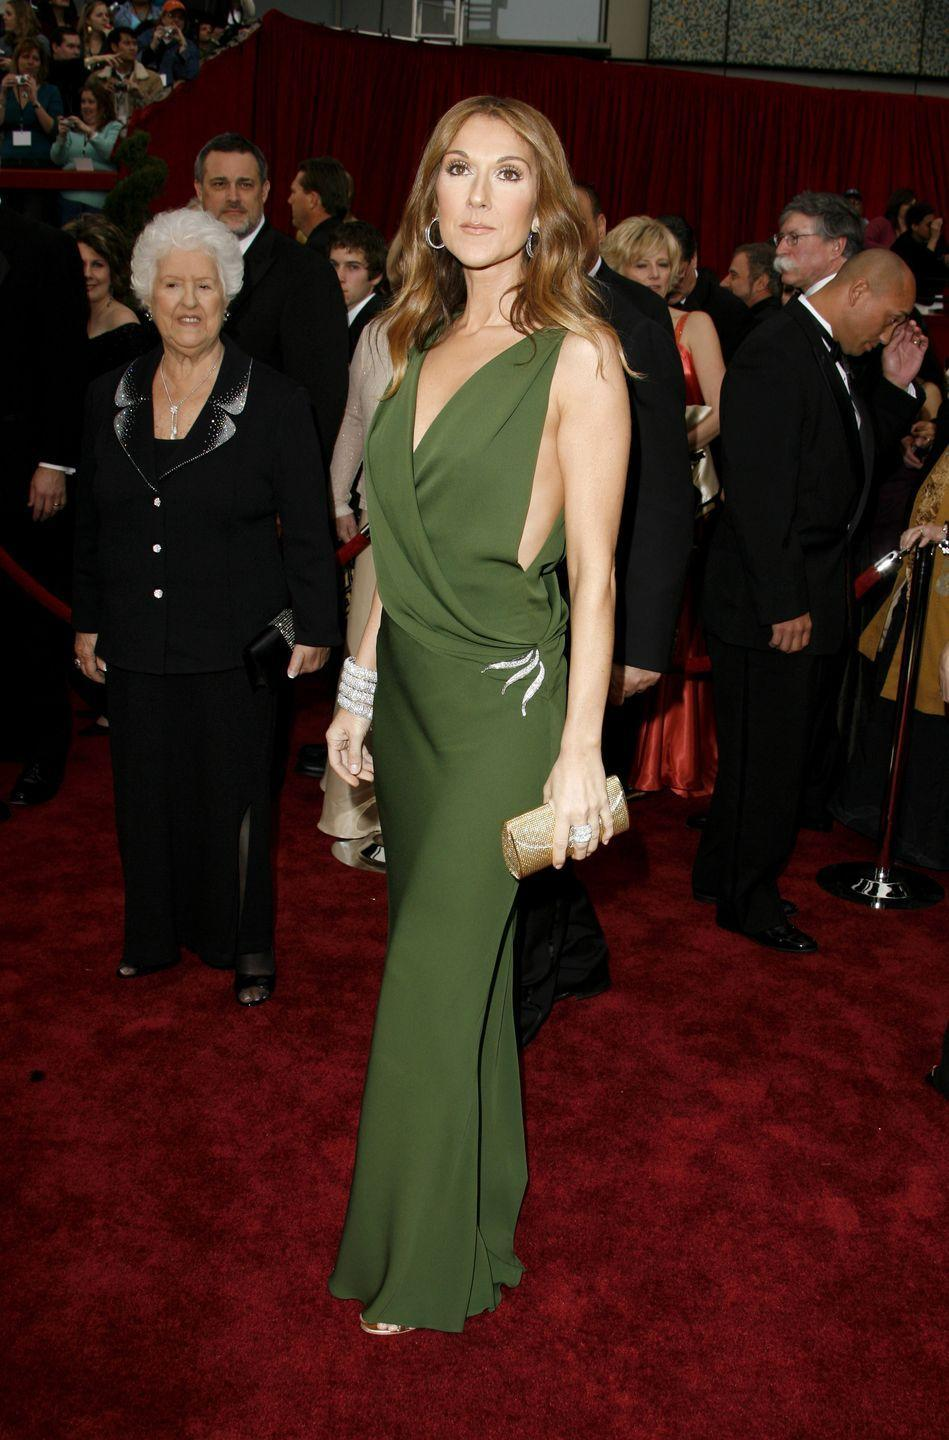 <p>A goddess in green, Celine turned heads on the red carpet wearing a deep-V wrap dress. She tastefully mixed metals in her accessories, with silver jewelry and a gold clutch.</p>